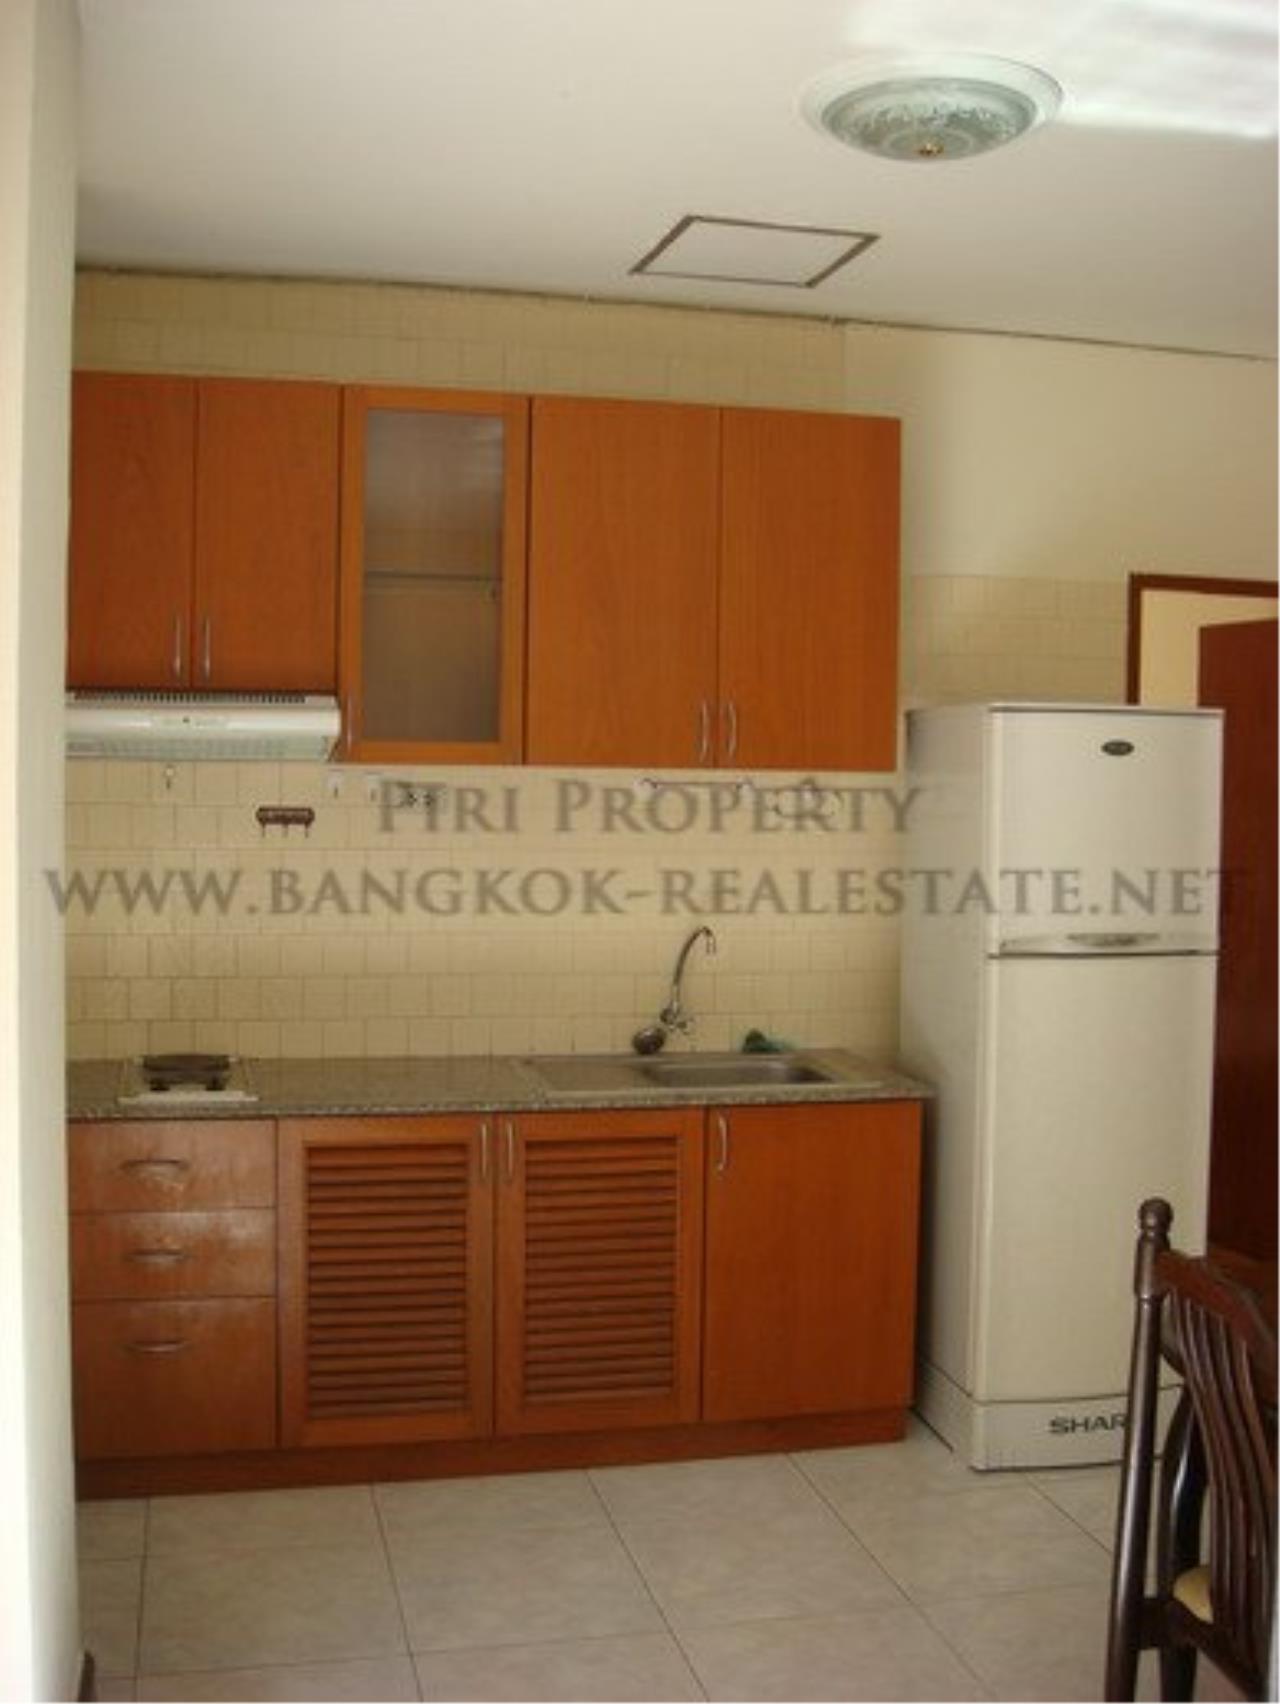 Piri Property Agency's Cheap Apartment in the heart of Asoke - 1 Bedroom - Very Spacious 3